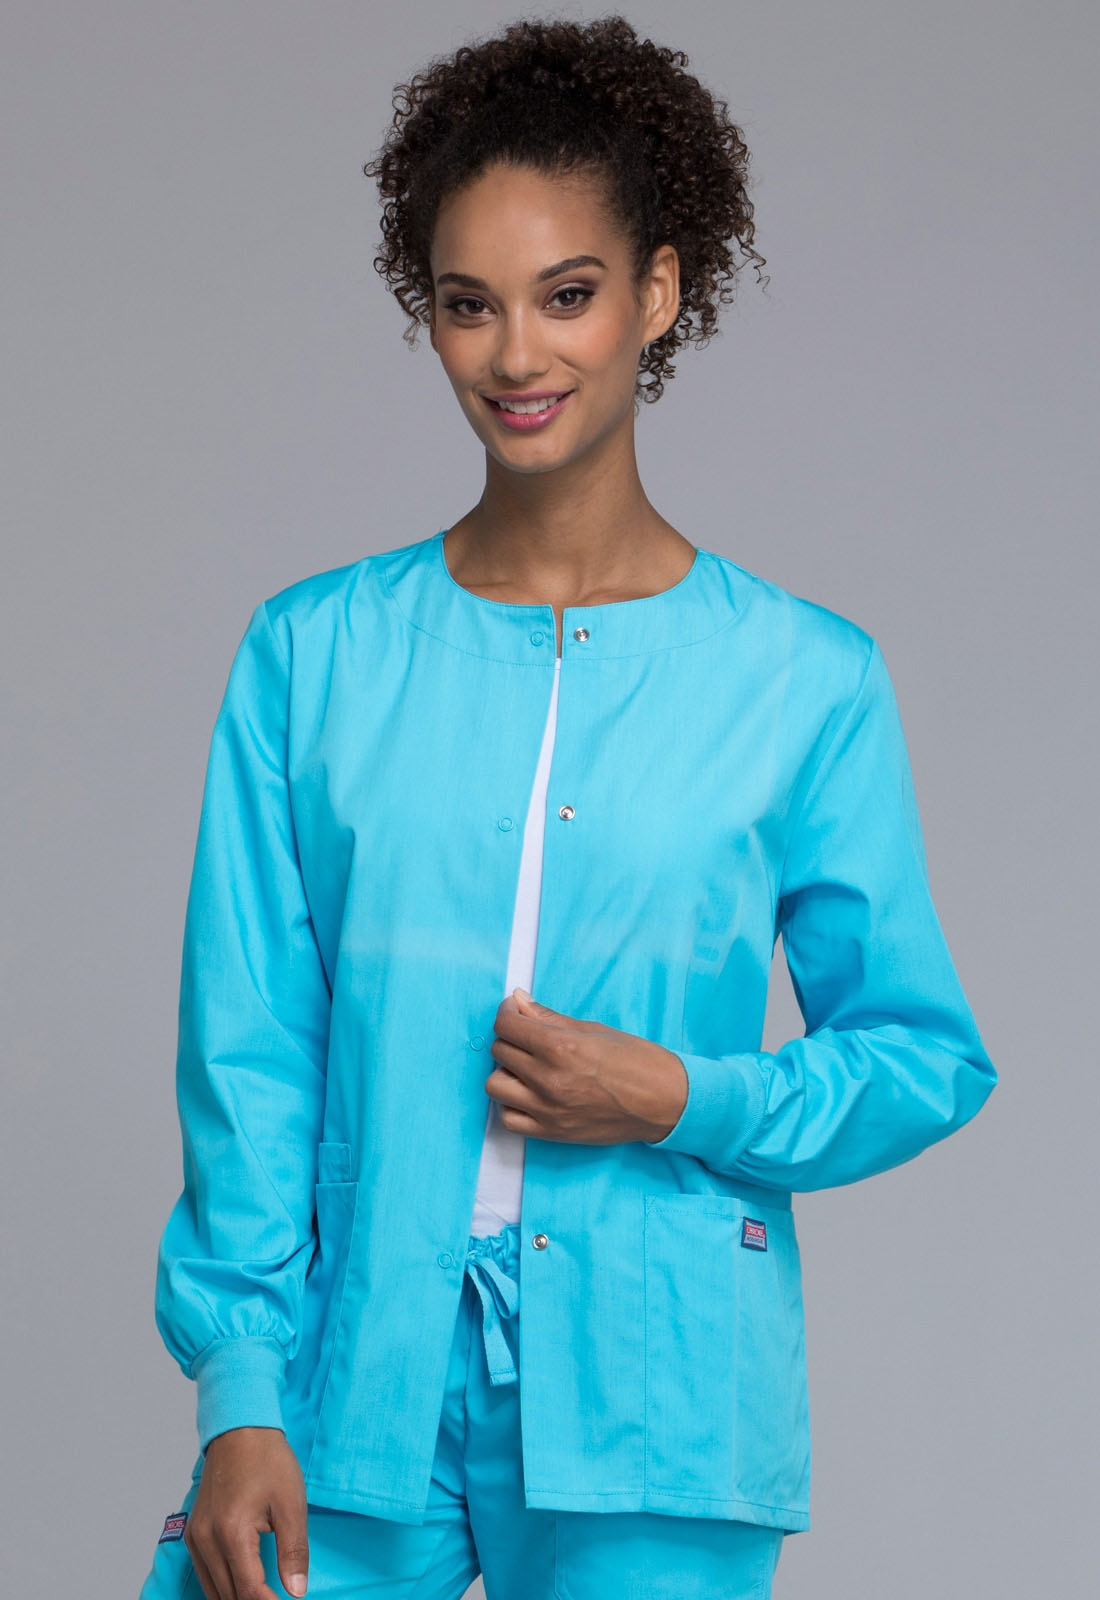 88c2b6cd8a3 WW Originals Snap Front Warm-Up Jacket in Turquoise 4350-TRQW from Grannys  Uniforms Work Fashions and More IV